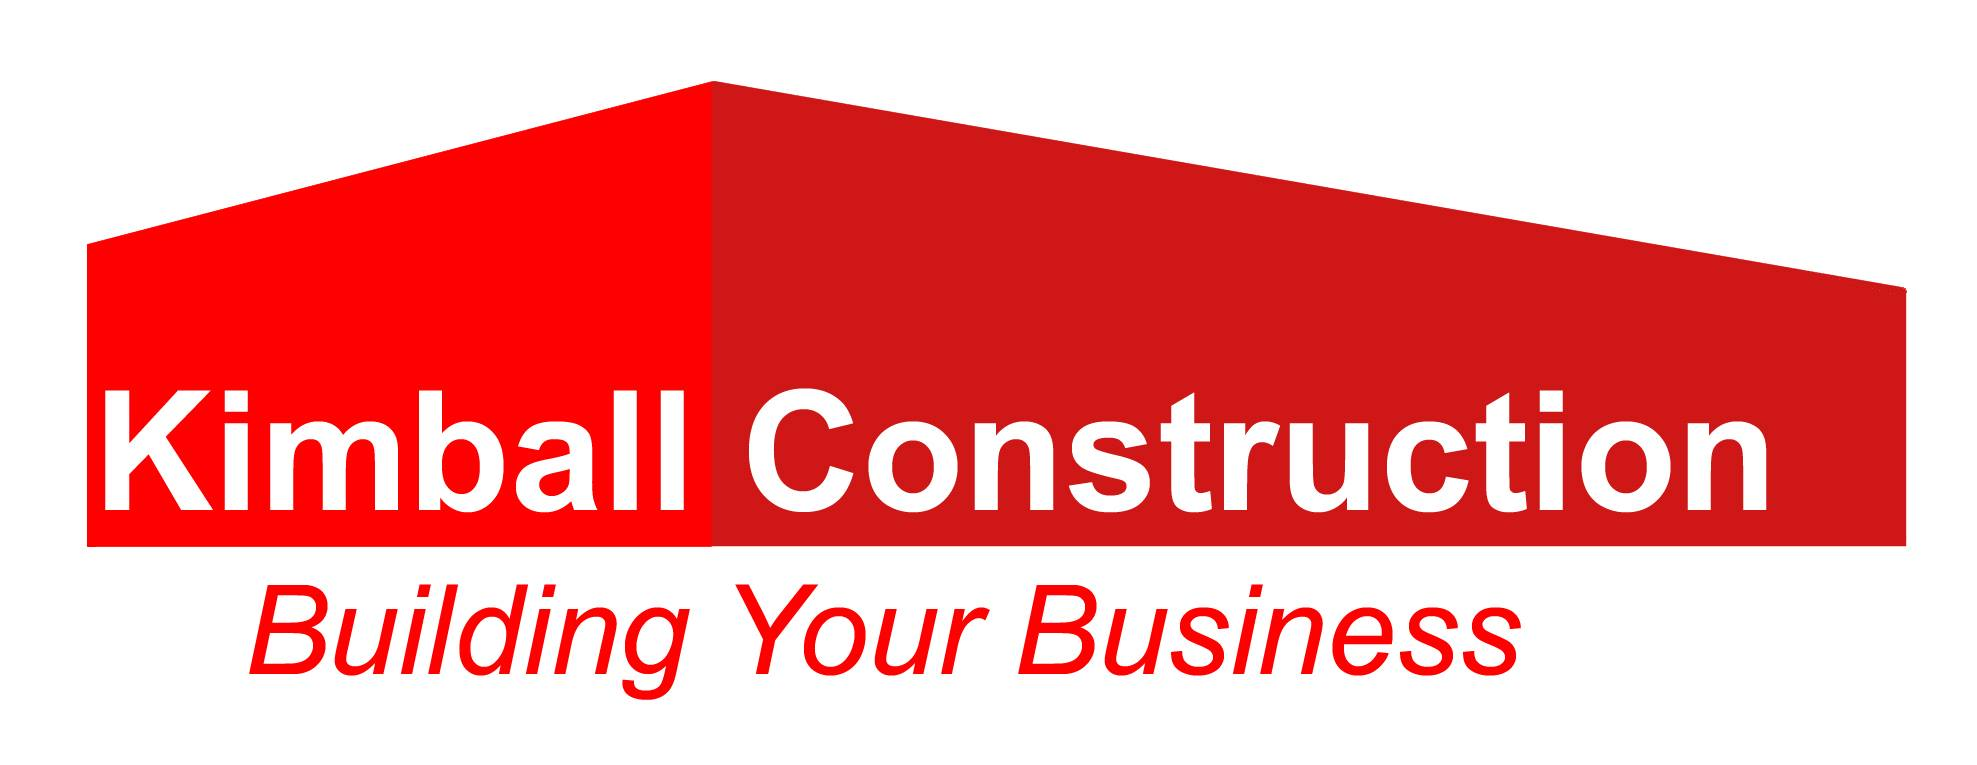 Kimball Construction launches Specialized In-House Design Services for Construction Projects